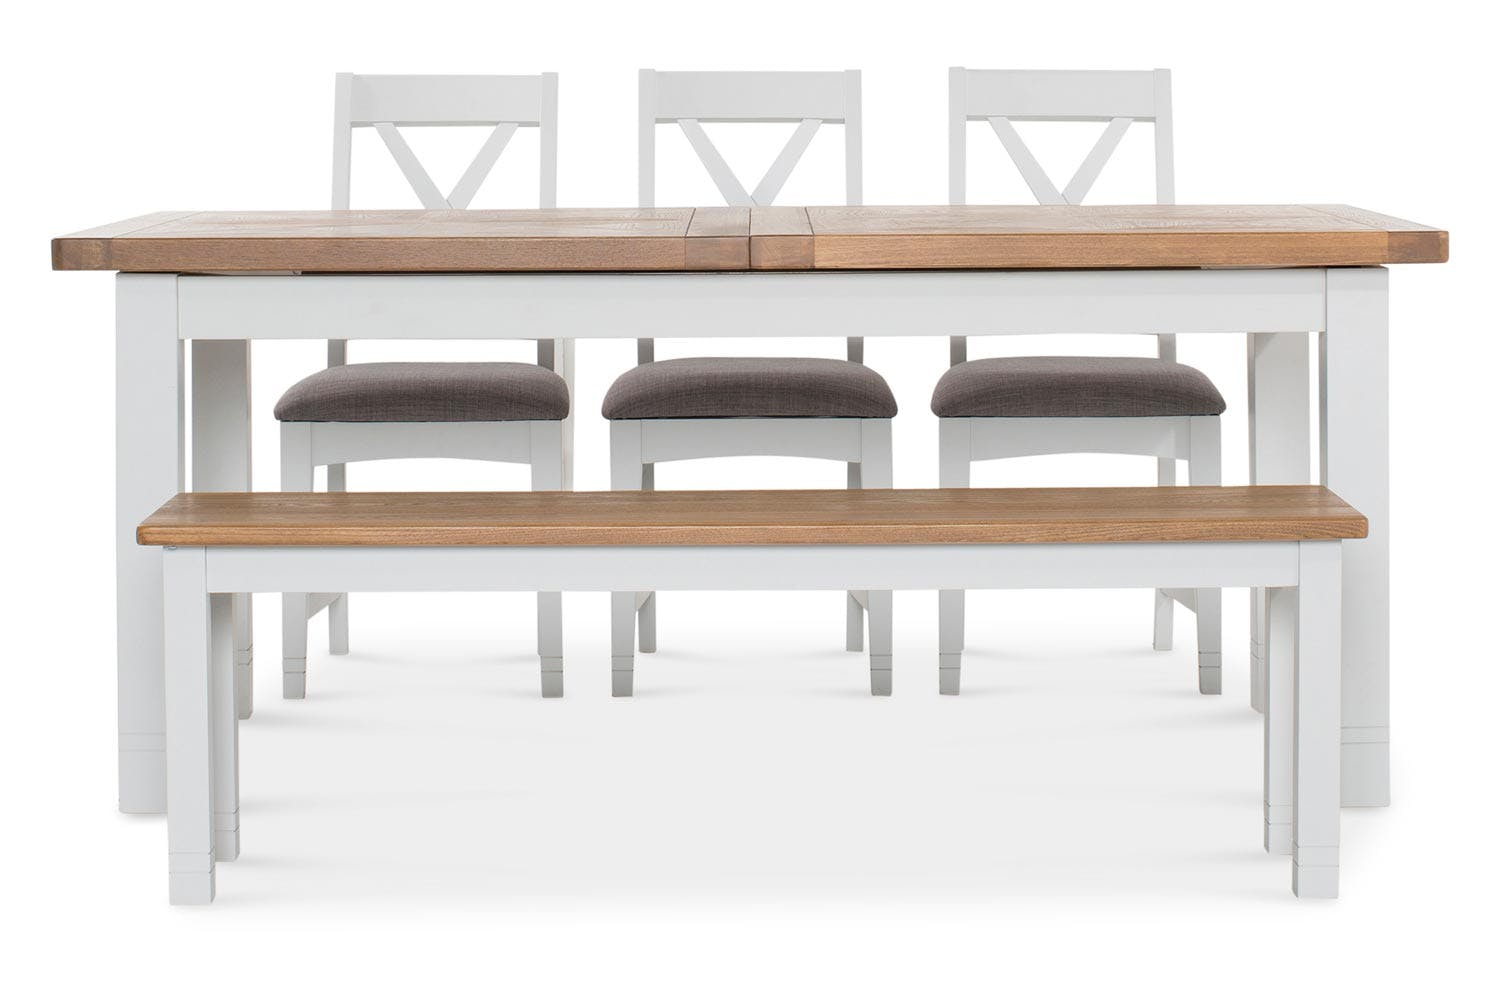 Stupendous Hemsby Dining Set With Bench And 3 Chairs 5 Piece Machost Co Dining Chair Design Ideas Machostcouk